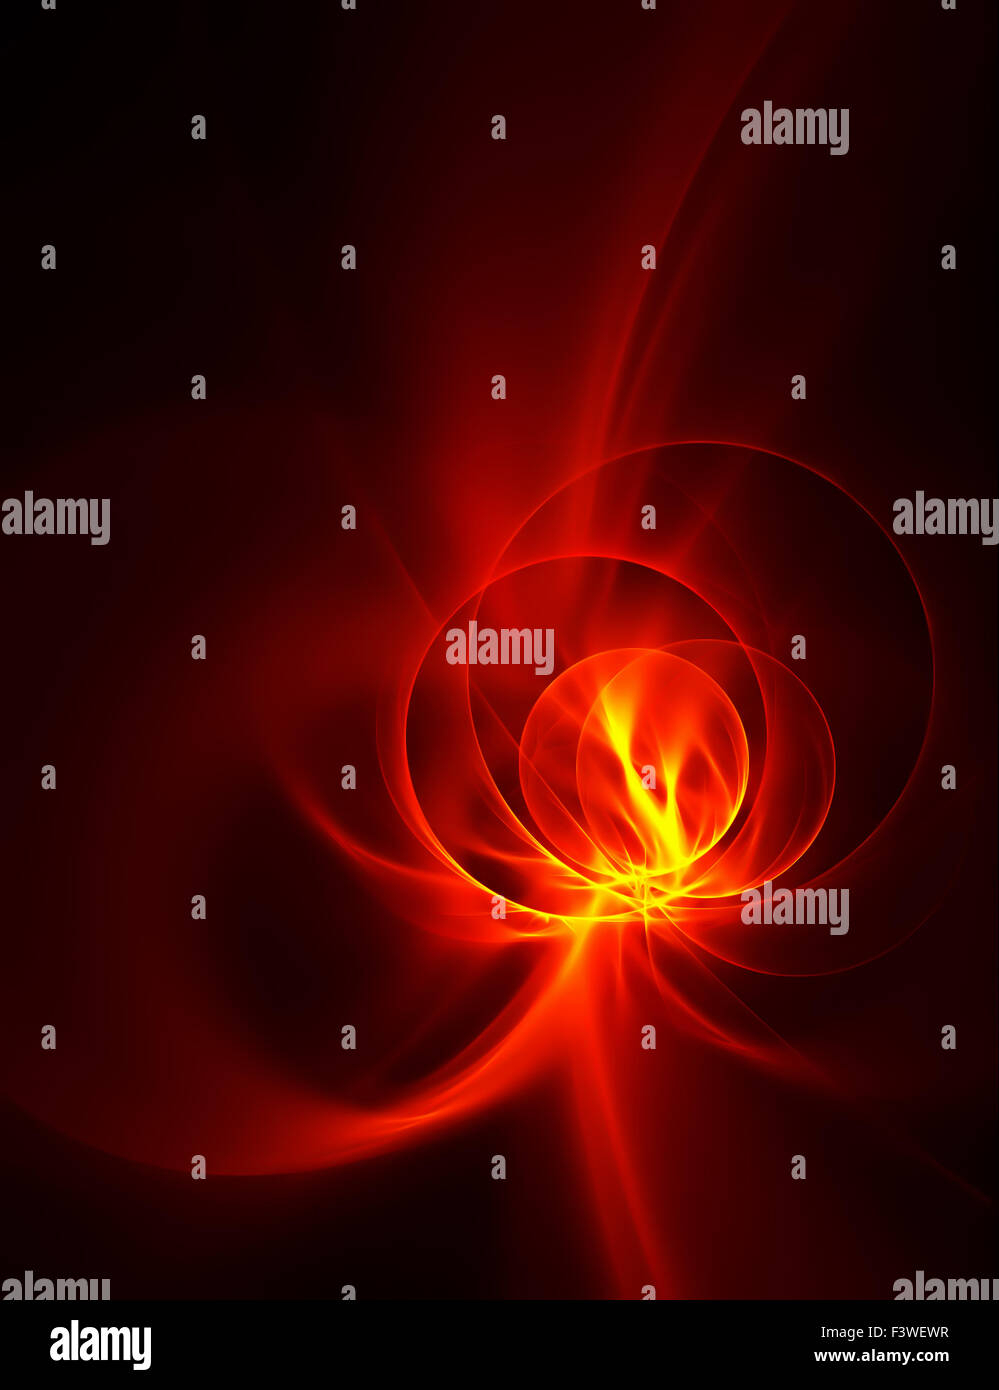 circles of fire - Stock Image